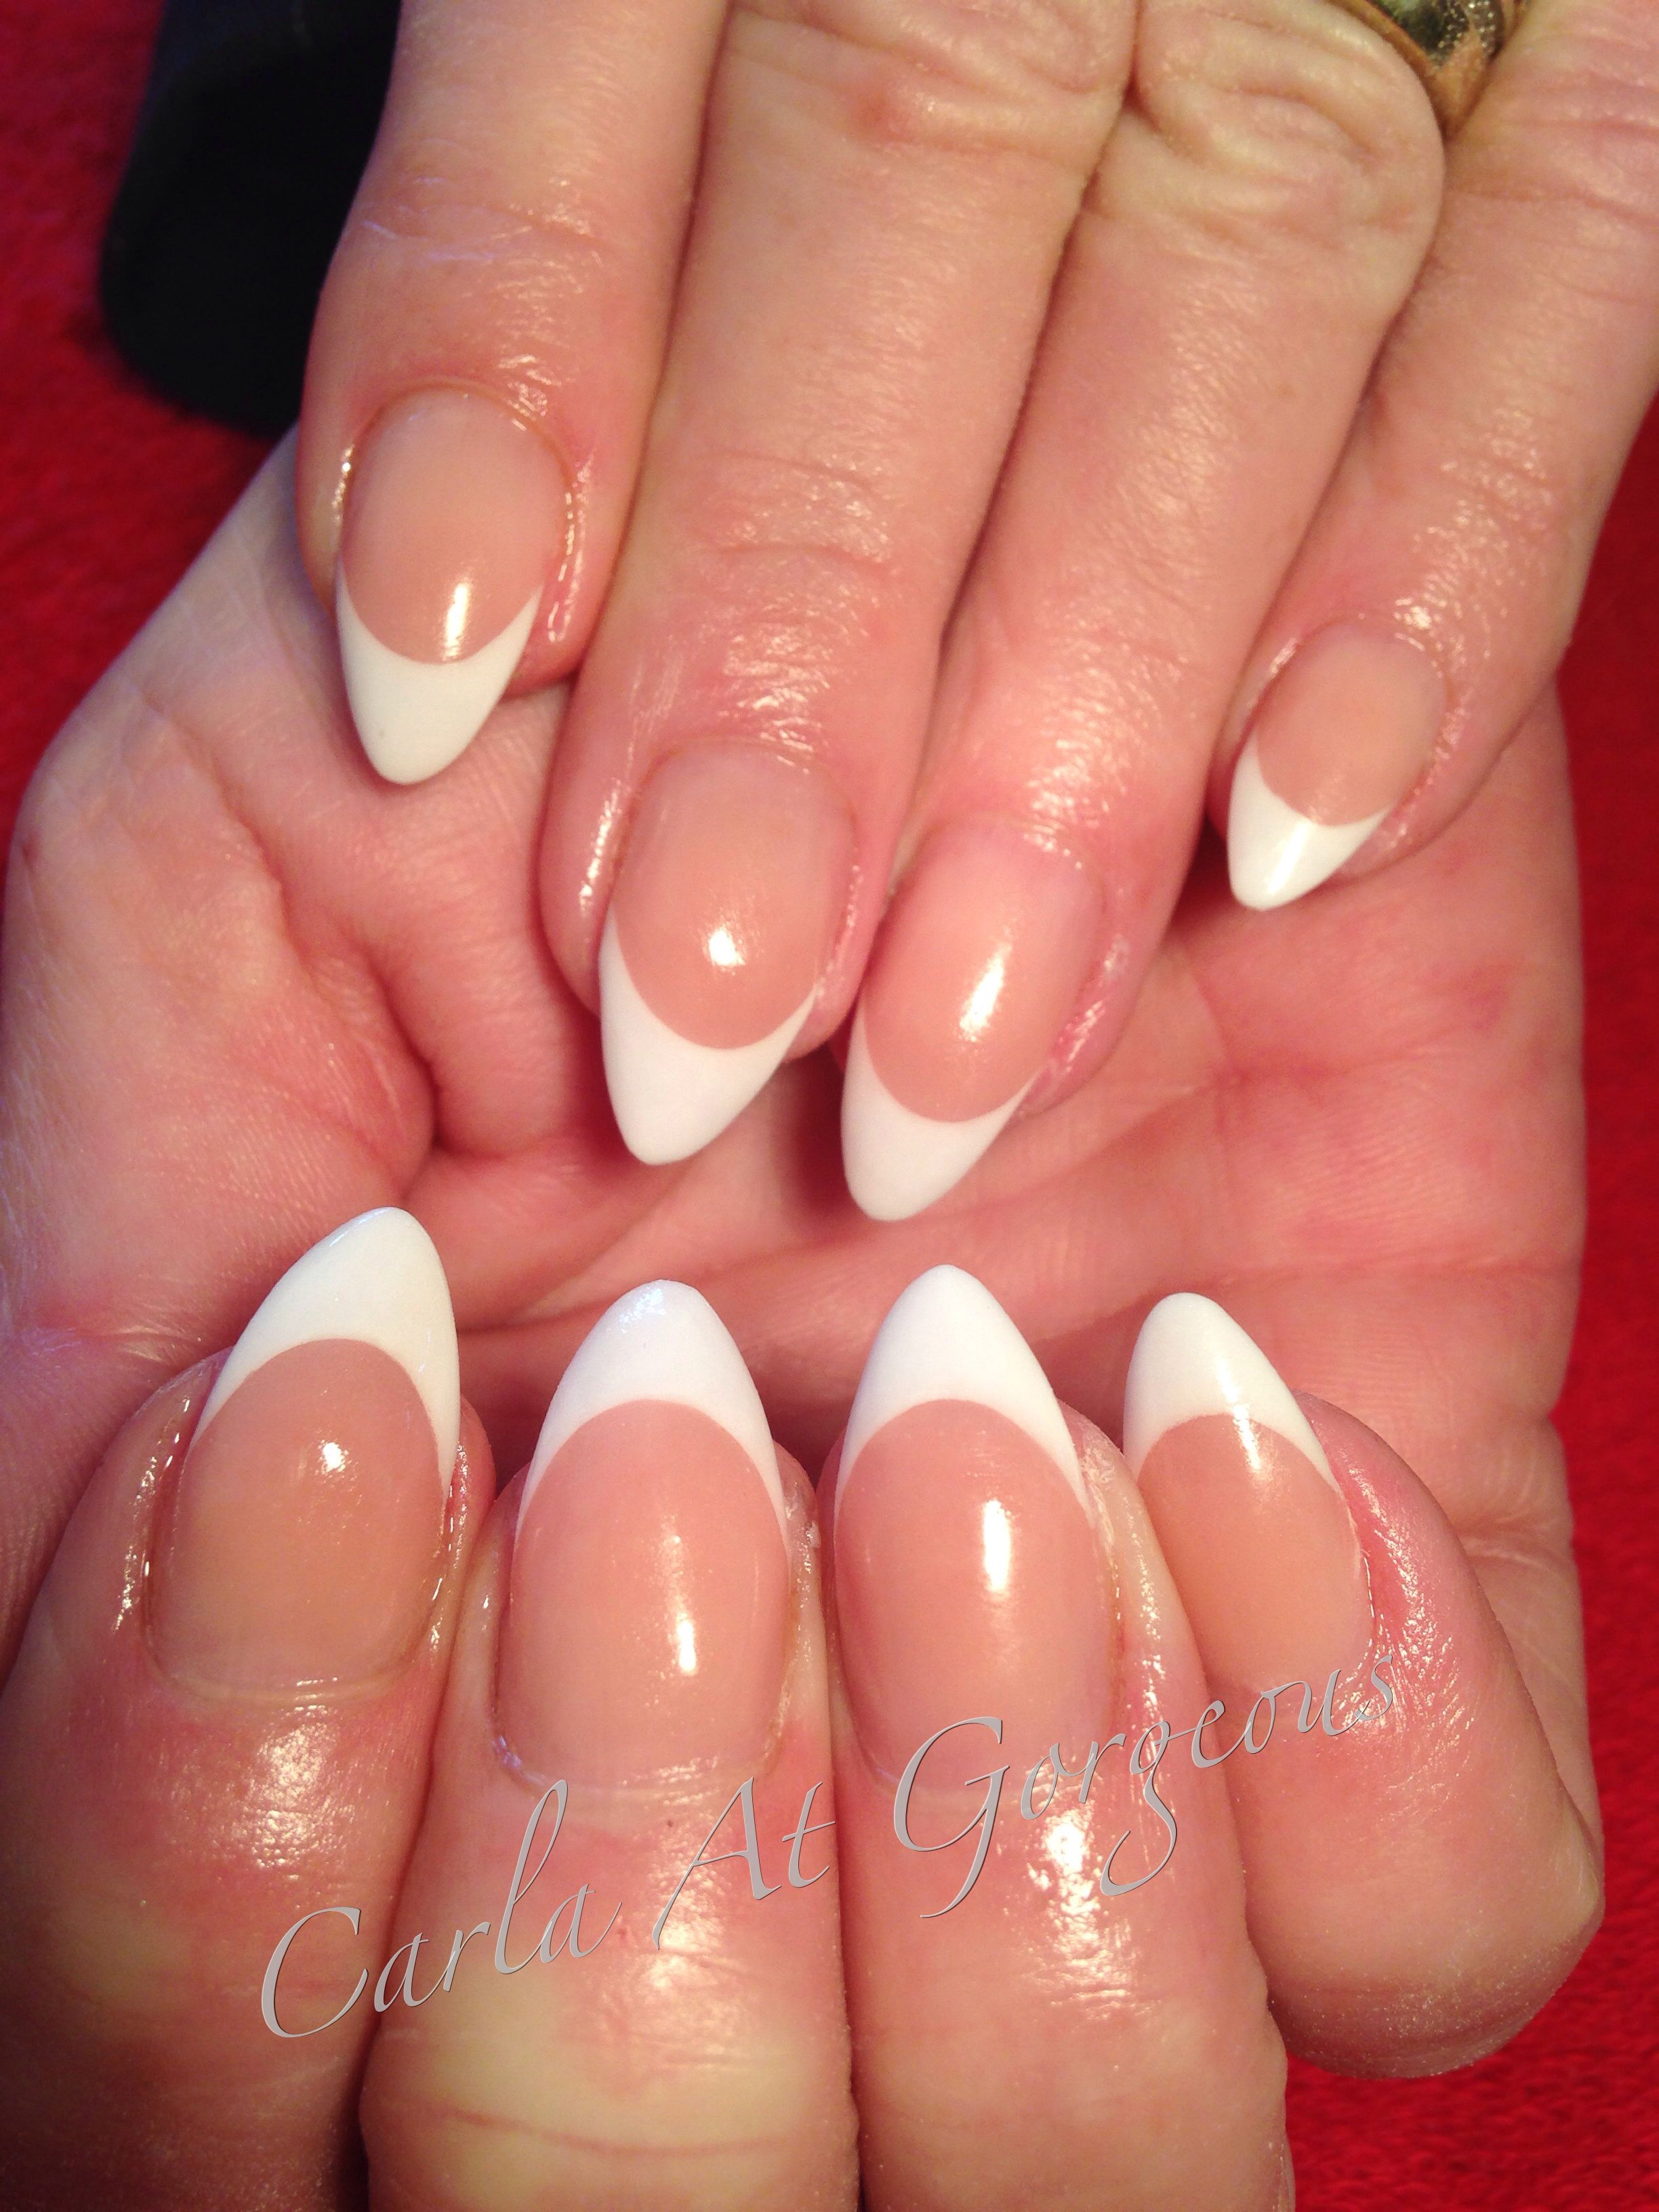 Classic french white almonds | Nails | Pinterest | Almonds and White ...